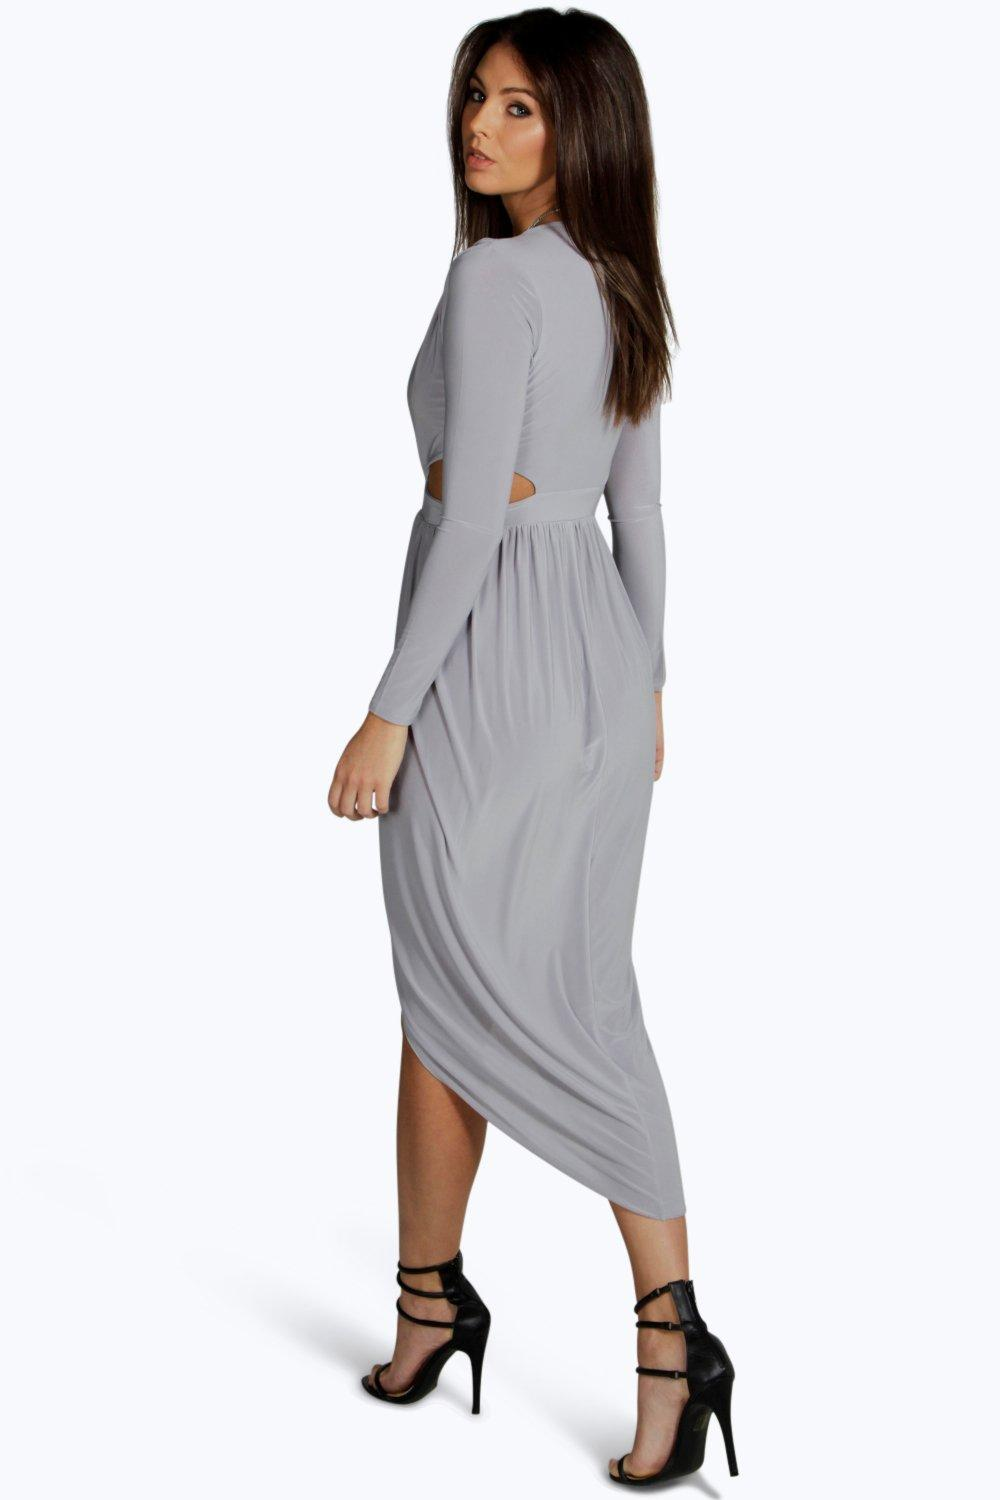 Silvia Cut Out Wrap Midi Dress at boohoo.com